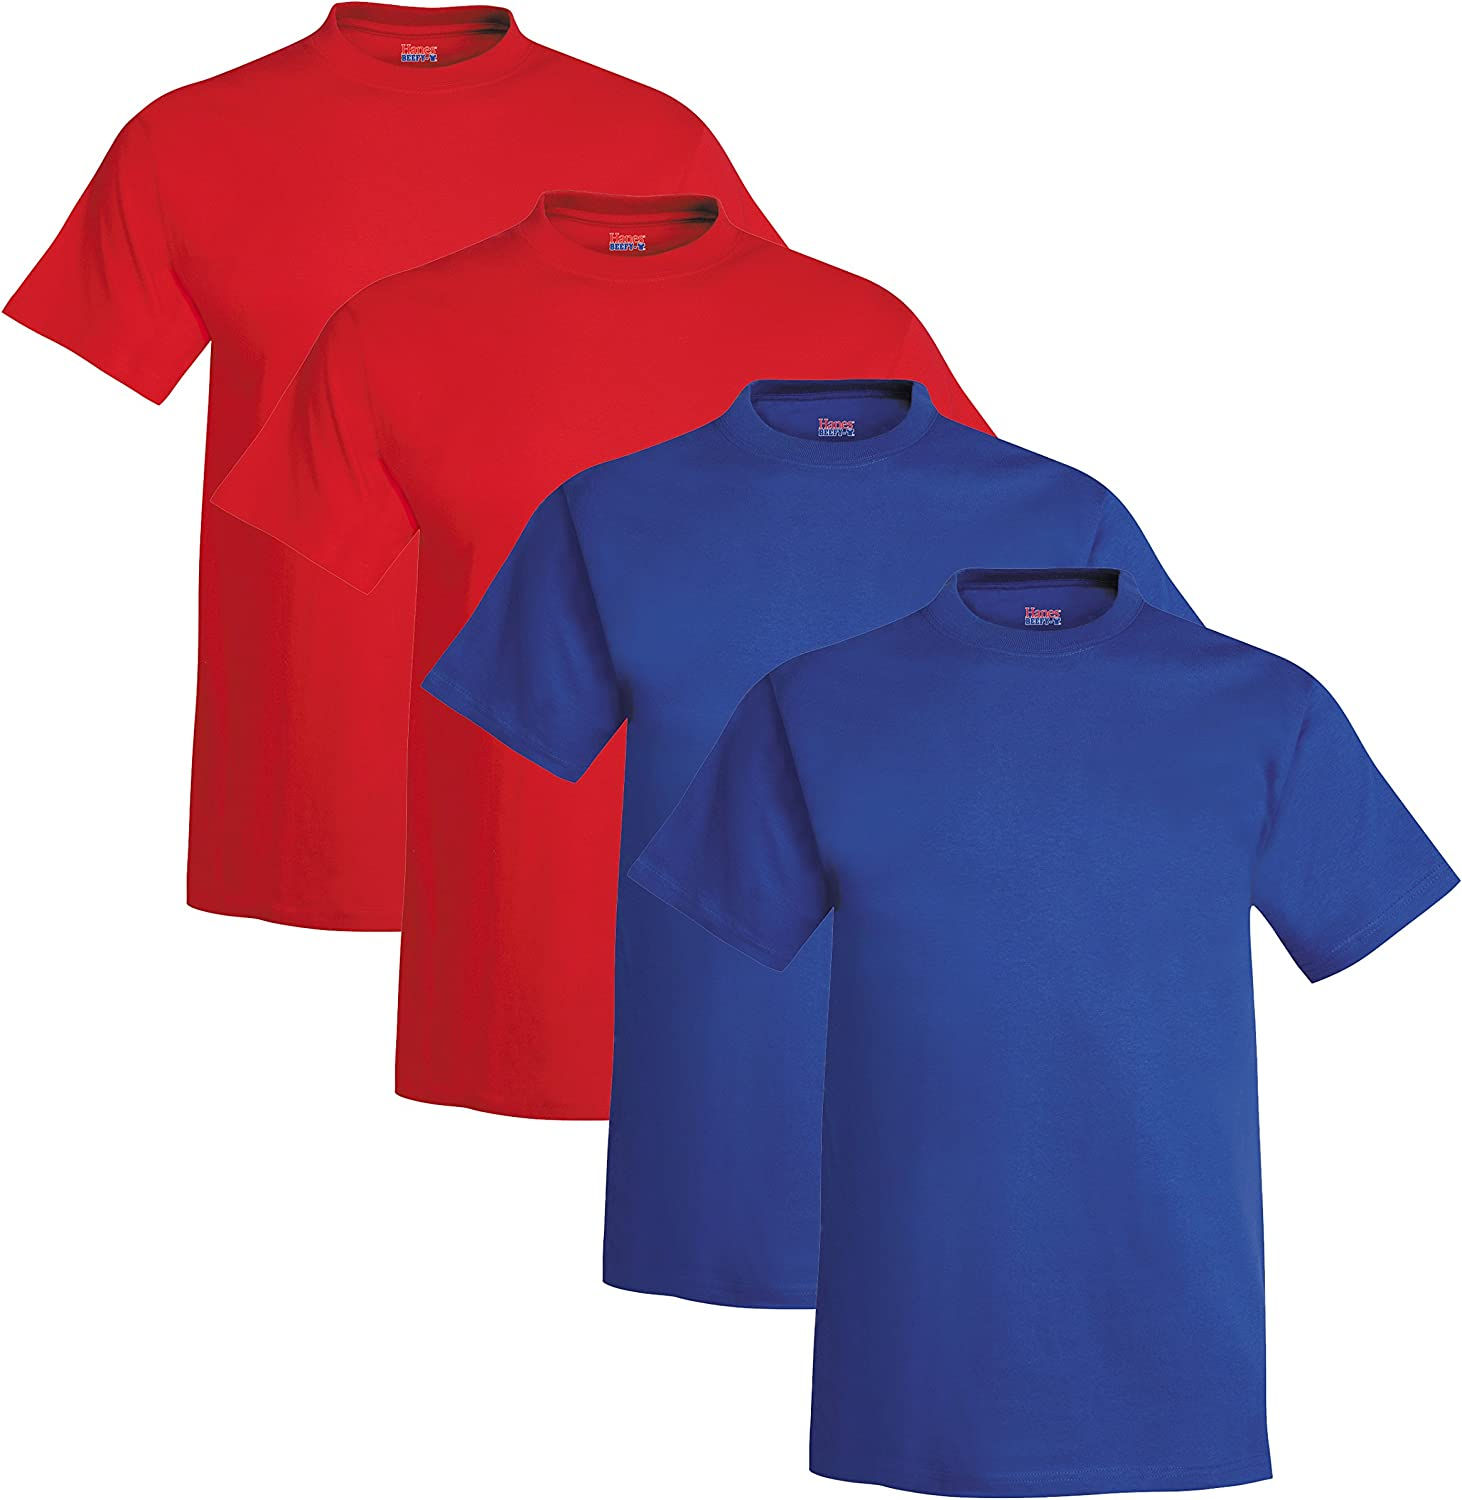 Hanes safety Men's Limited price sale Beefy-T Short Sleeve of Pack T-Shirt 4